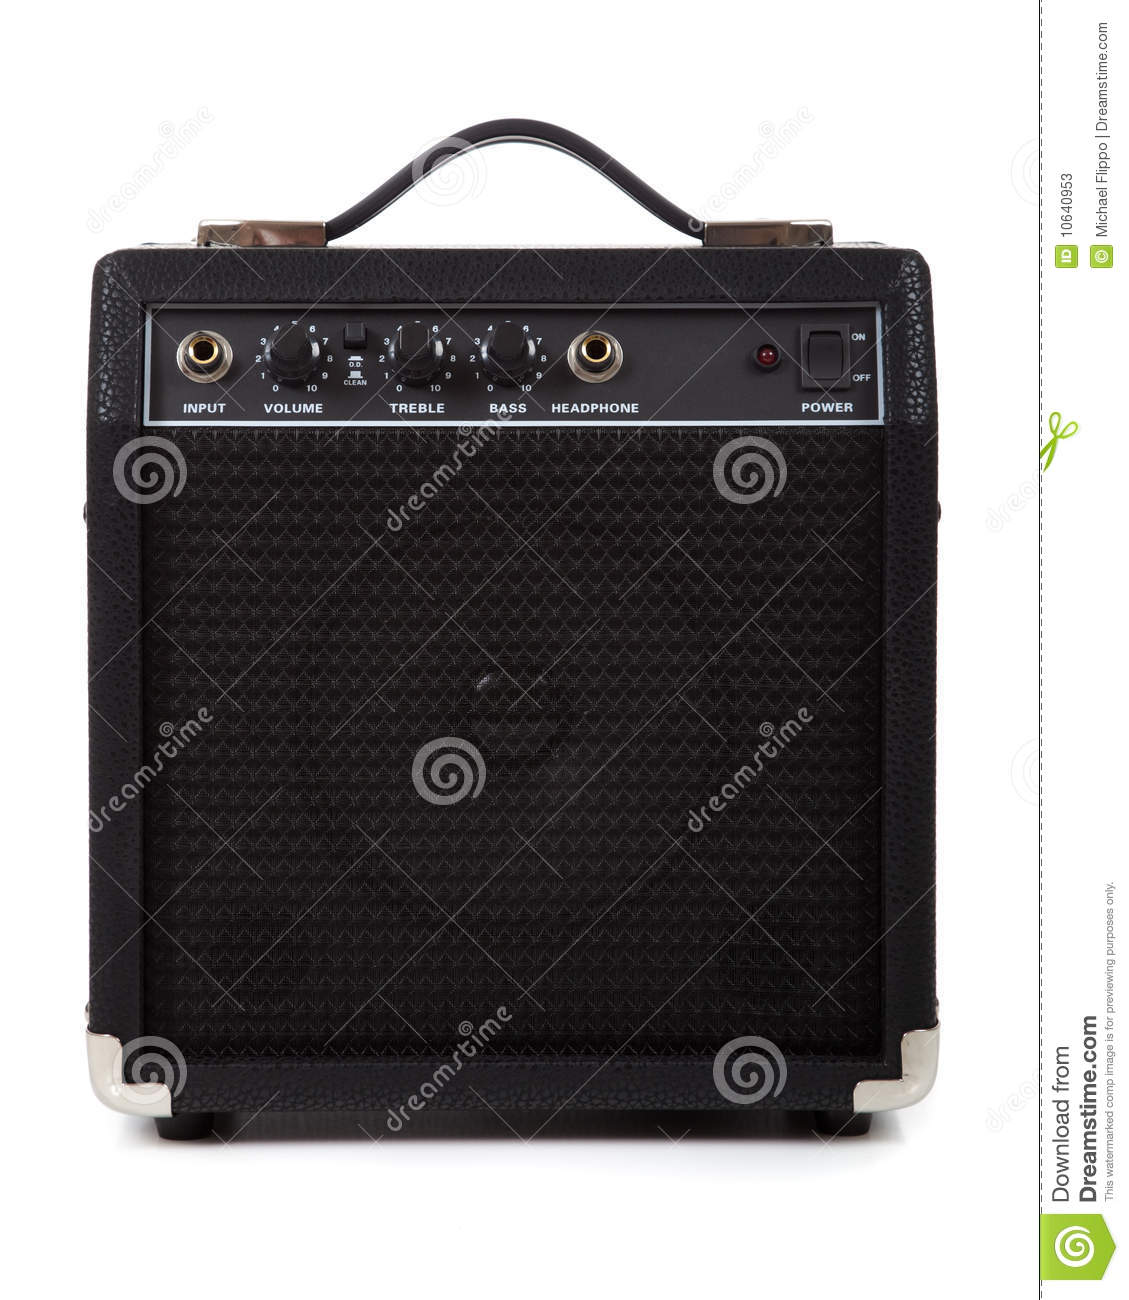 Guitar Amplifier Or Speaker Stock Photos - Image: 10640953